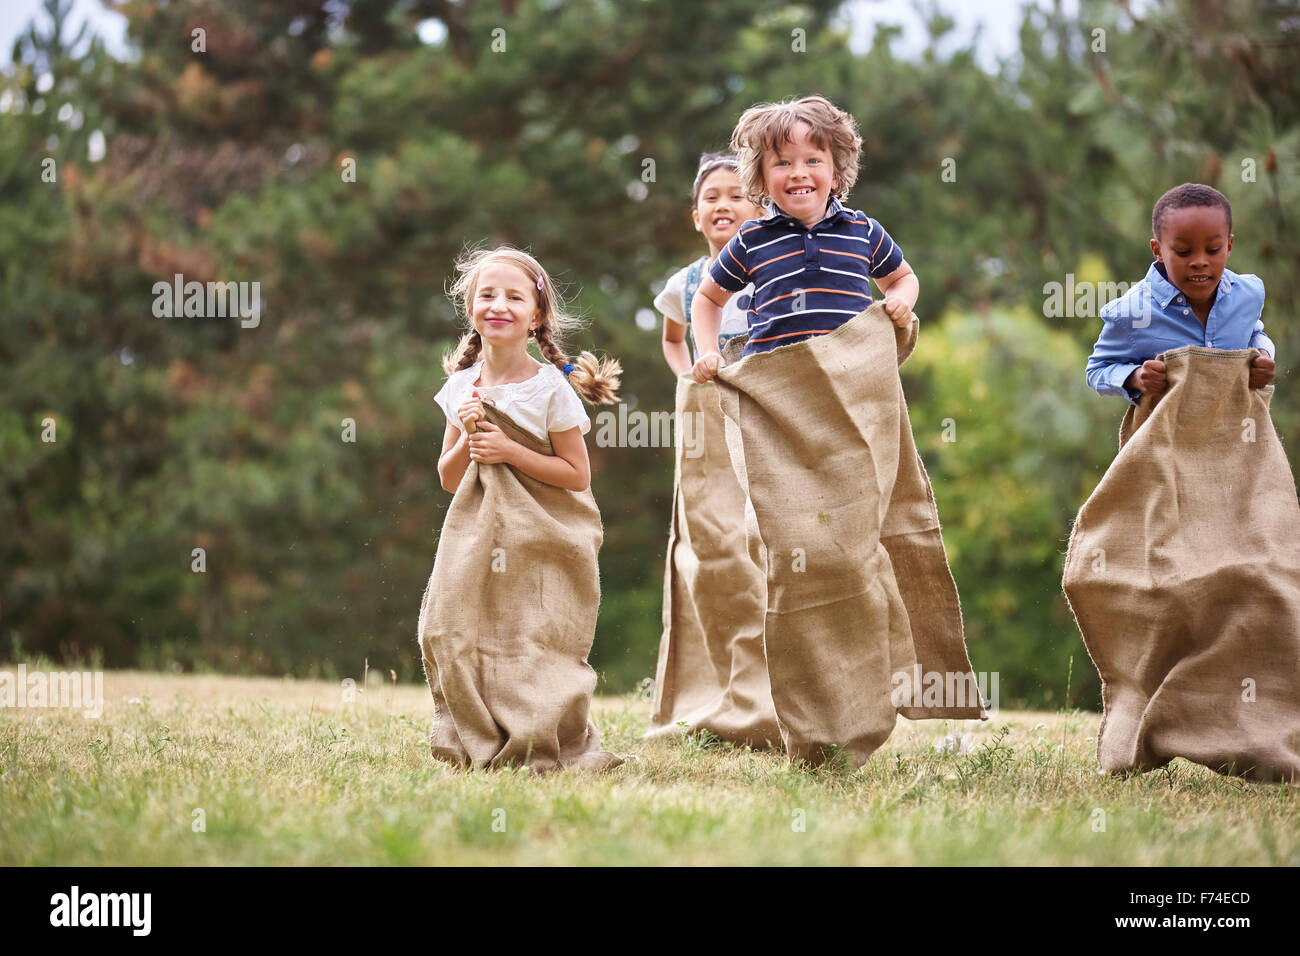 Interracial group of kids having fut at sack race - Stock Image